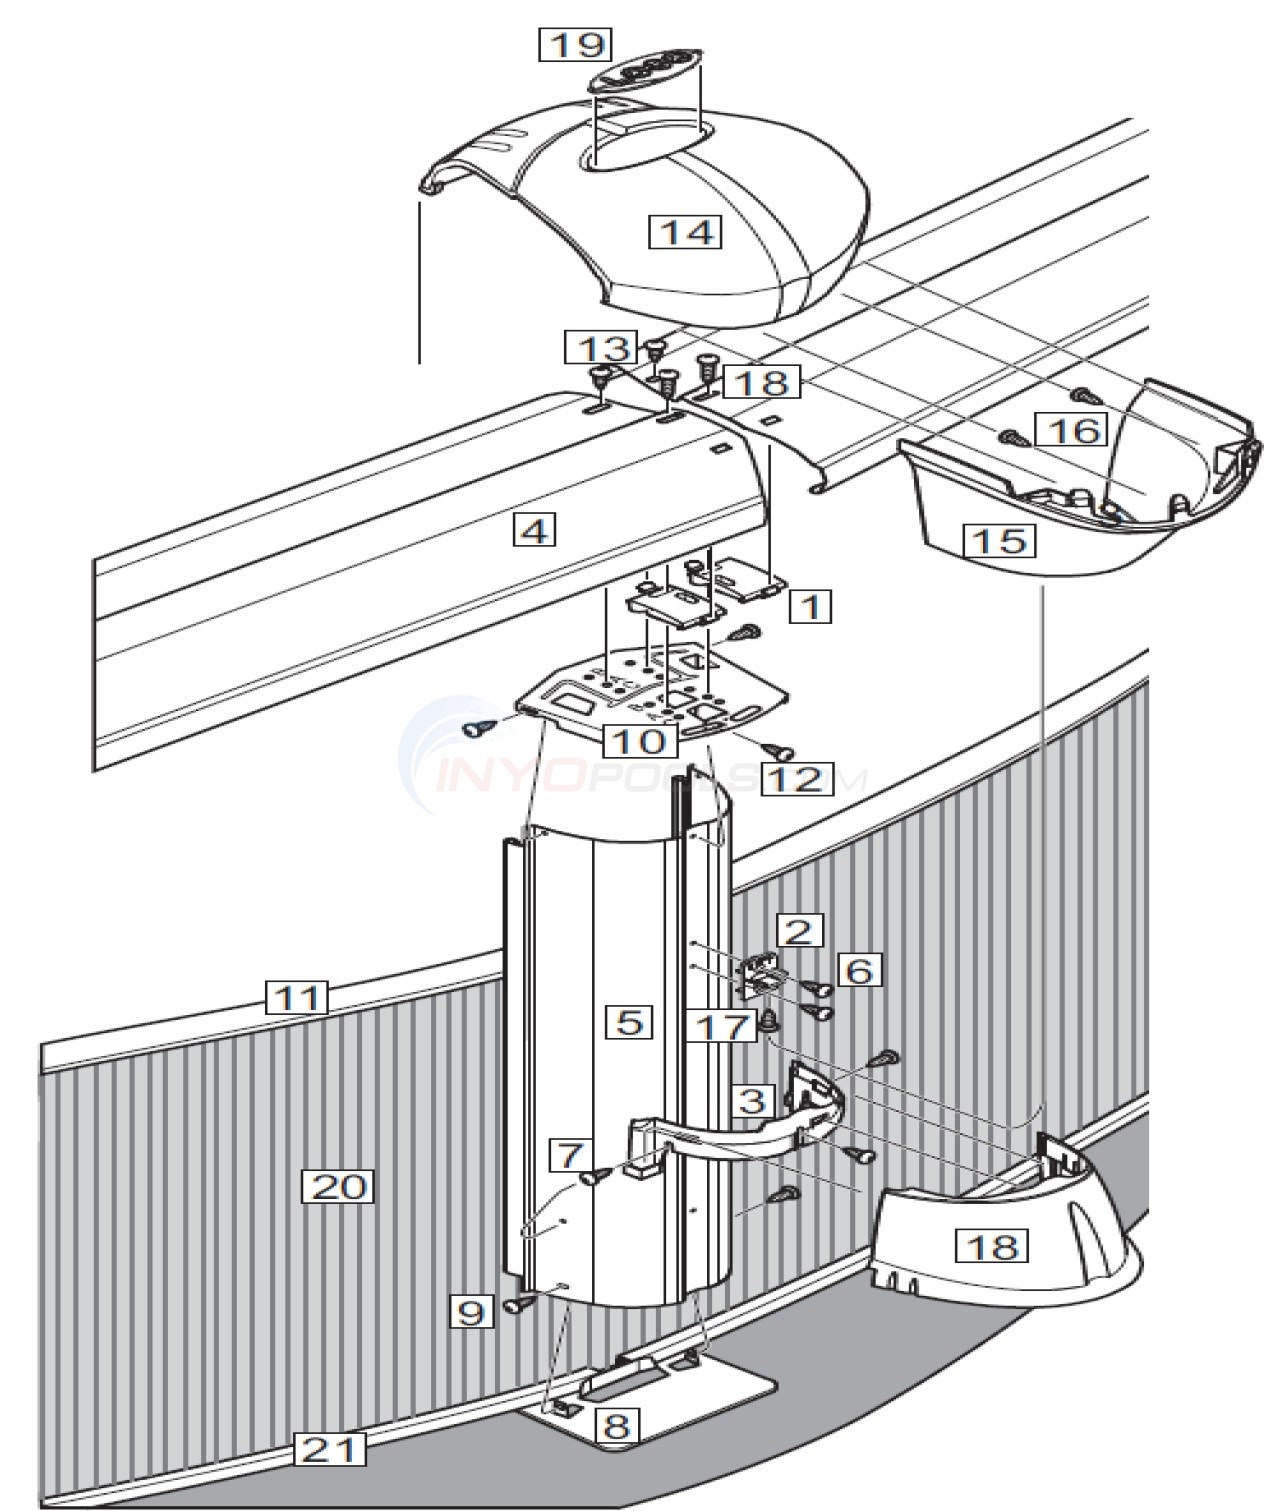 "J5000 Mist 18' Round 52"" Wall (Steel Top Rail, Steel Upright) Diagram"